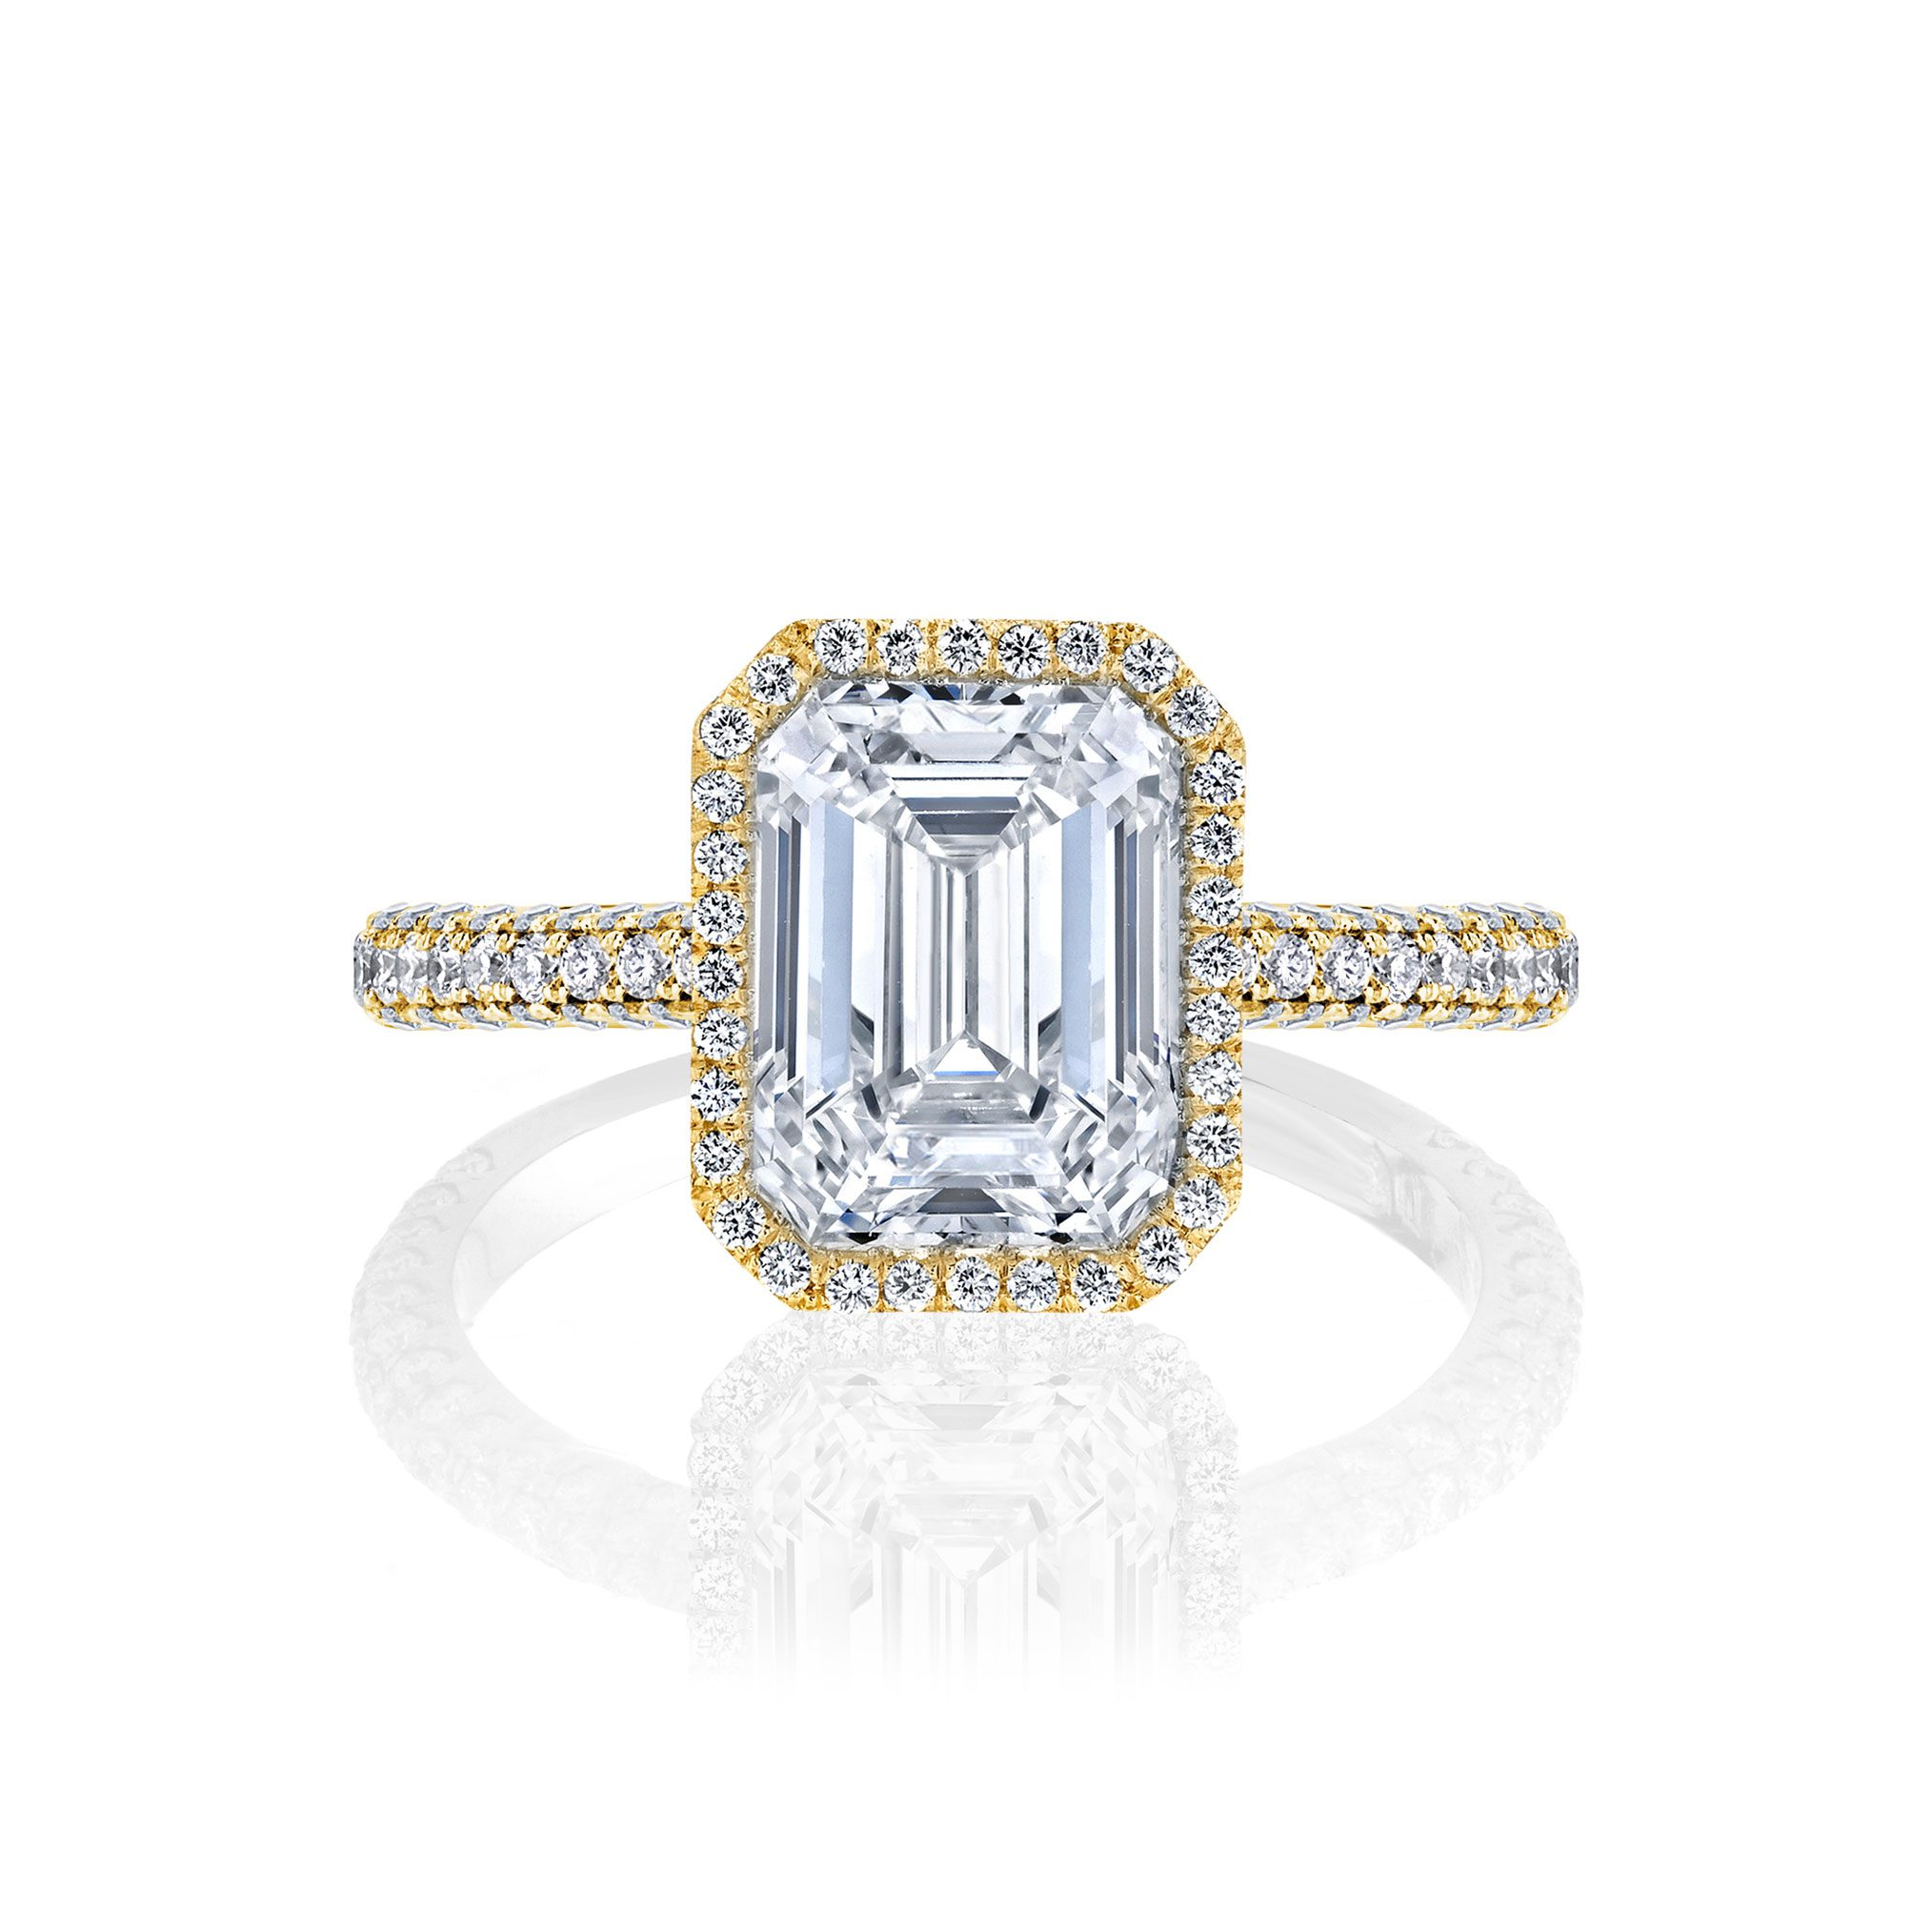 Jacqueline Seamless Halo® Engagement Ring with Lab Grown Emerald Cut Diamond in 18k yellow gold